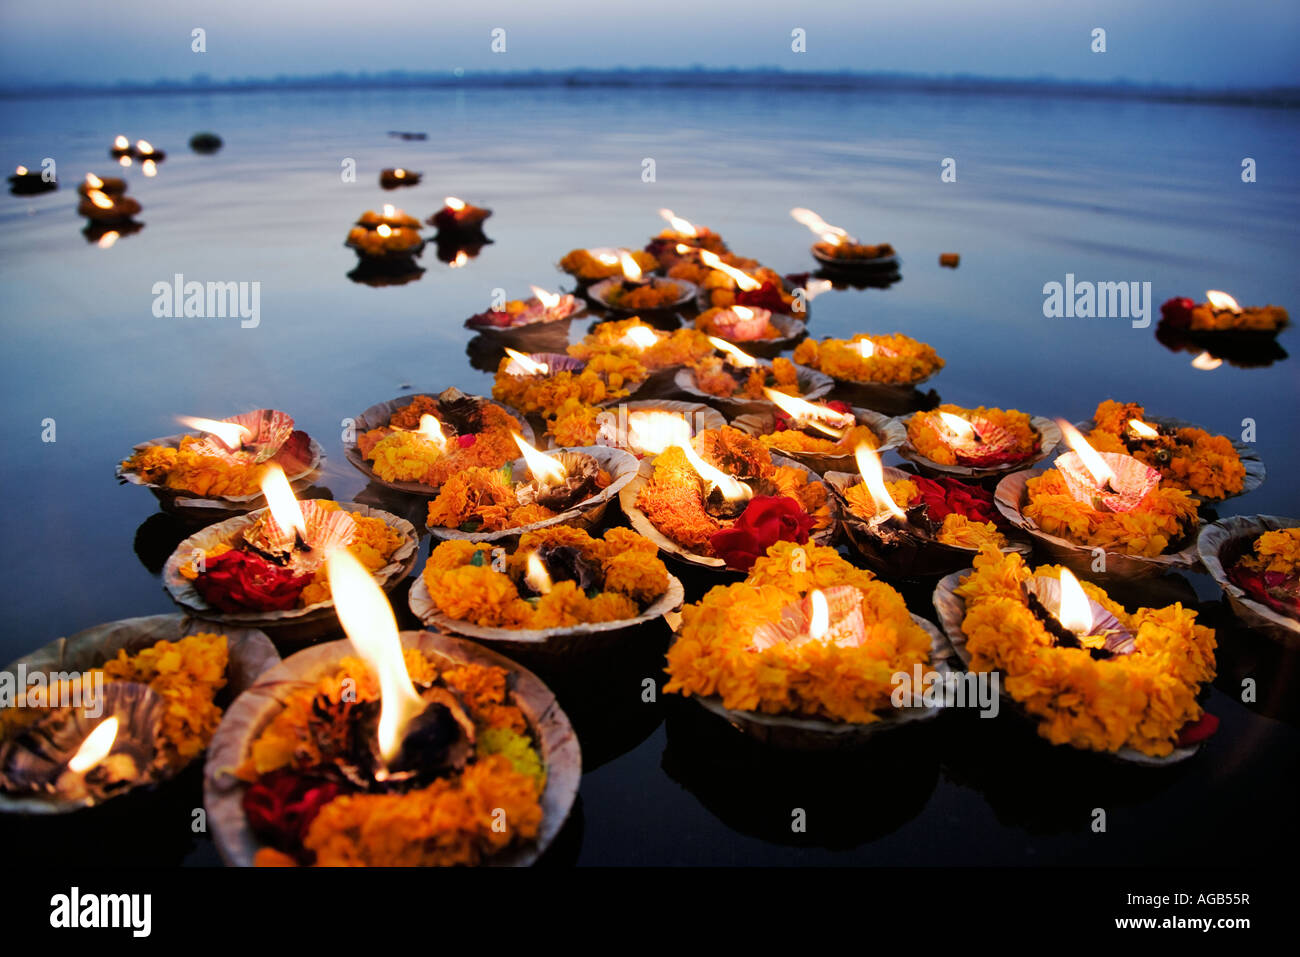 Deepak in the Ganges River The deepak or oil lamps are used as an offering to the Ganges River Varanasi India Stock Foto